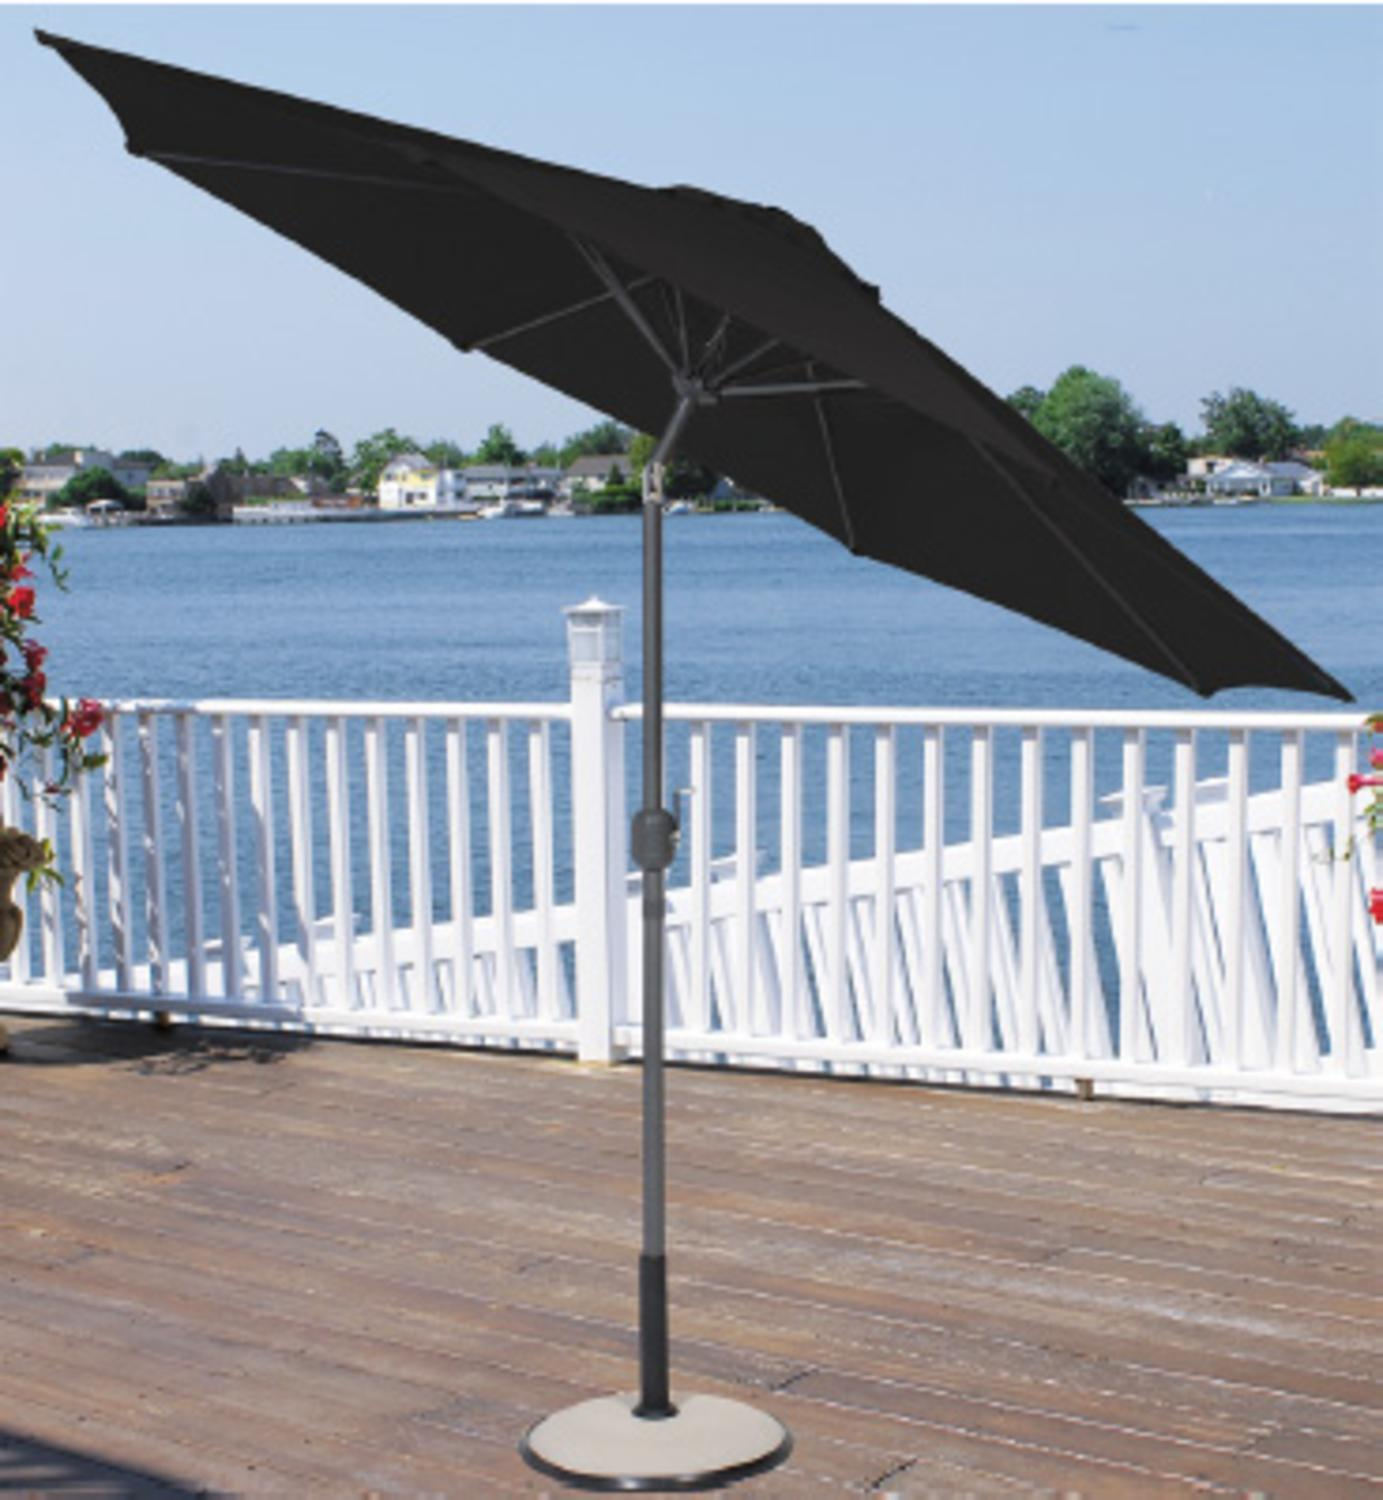 9' Outdoor Patio Market Umbrella with Hand Crank and Tilt - Hunter Green & Black